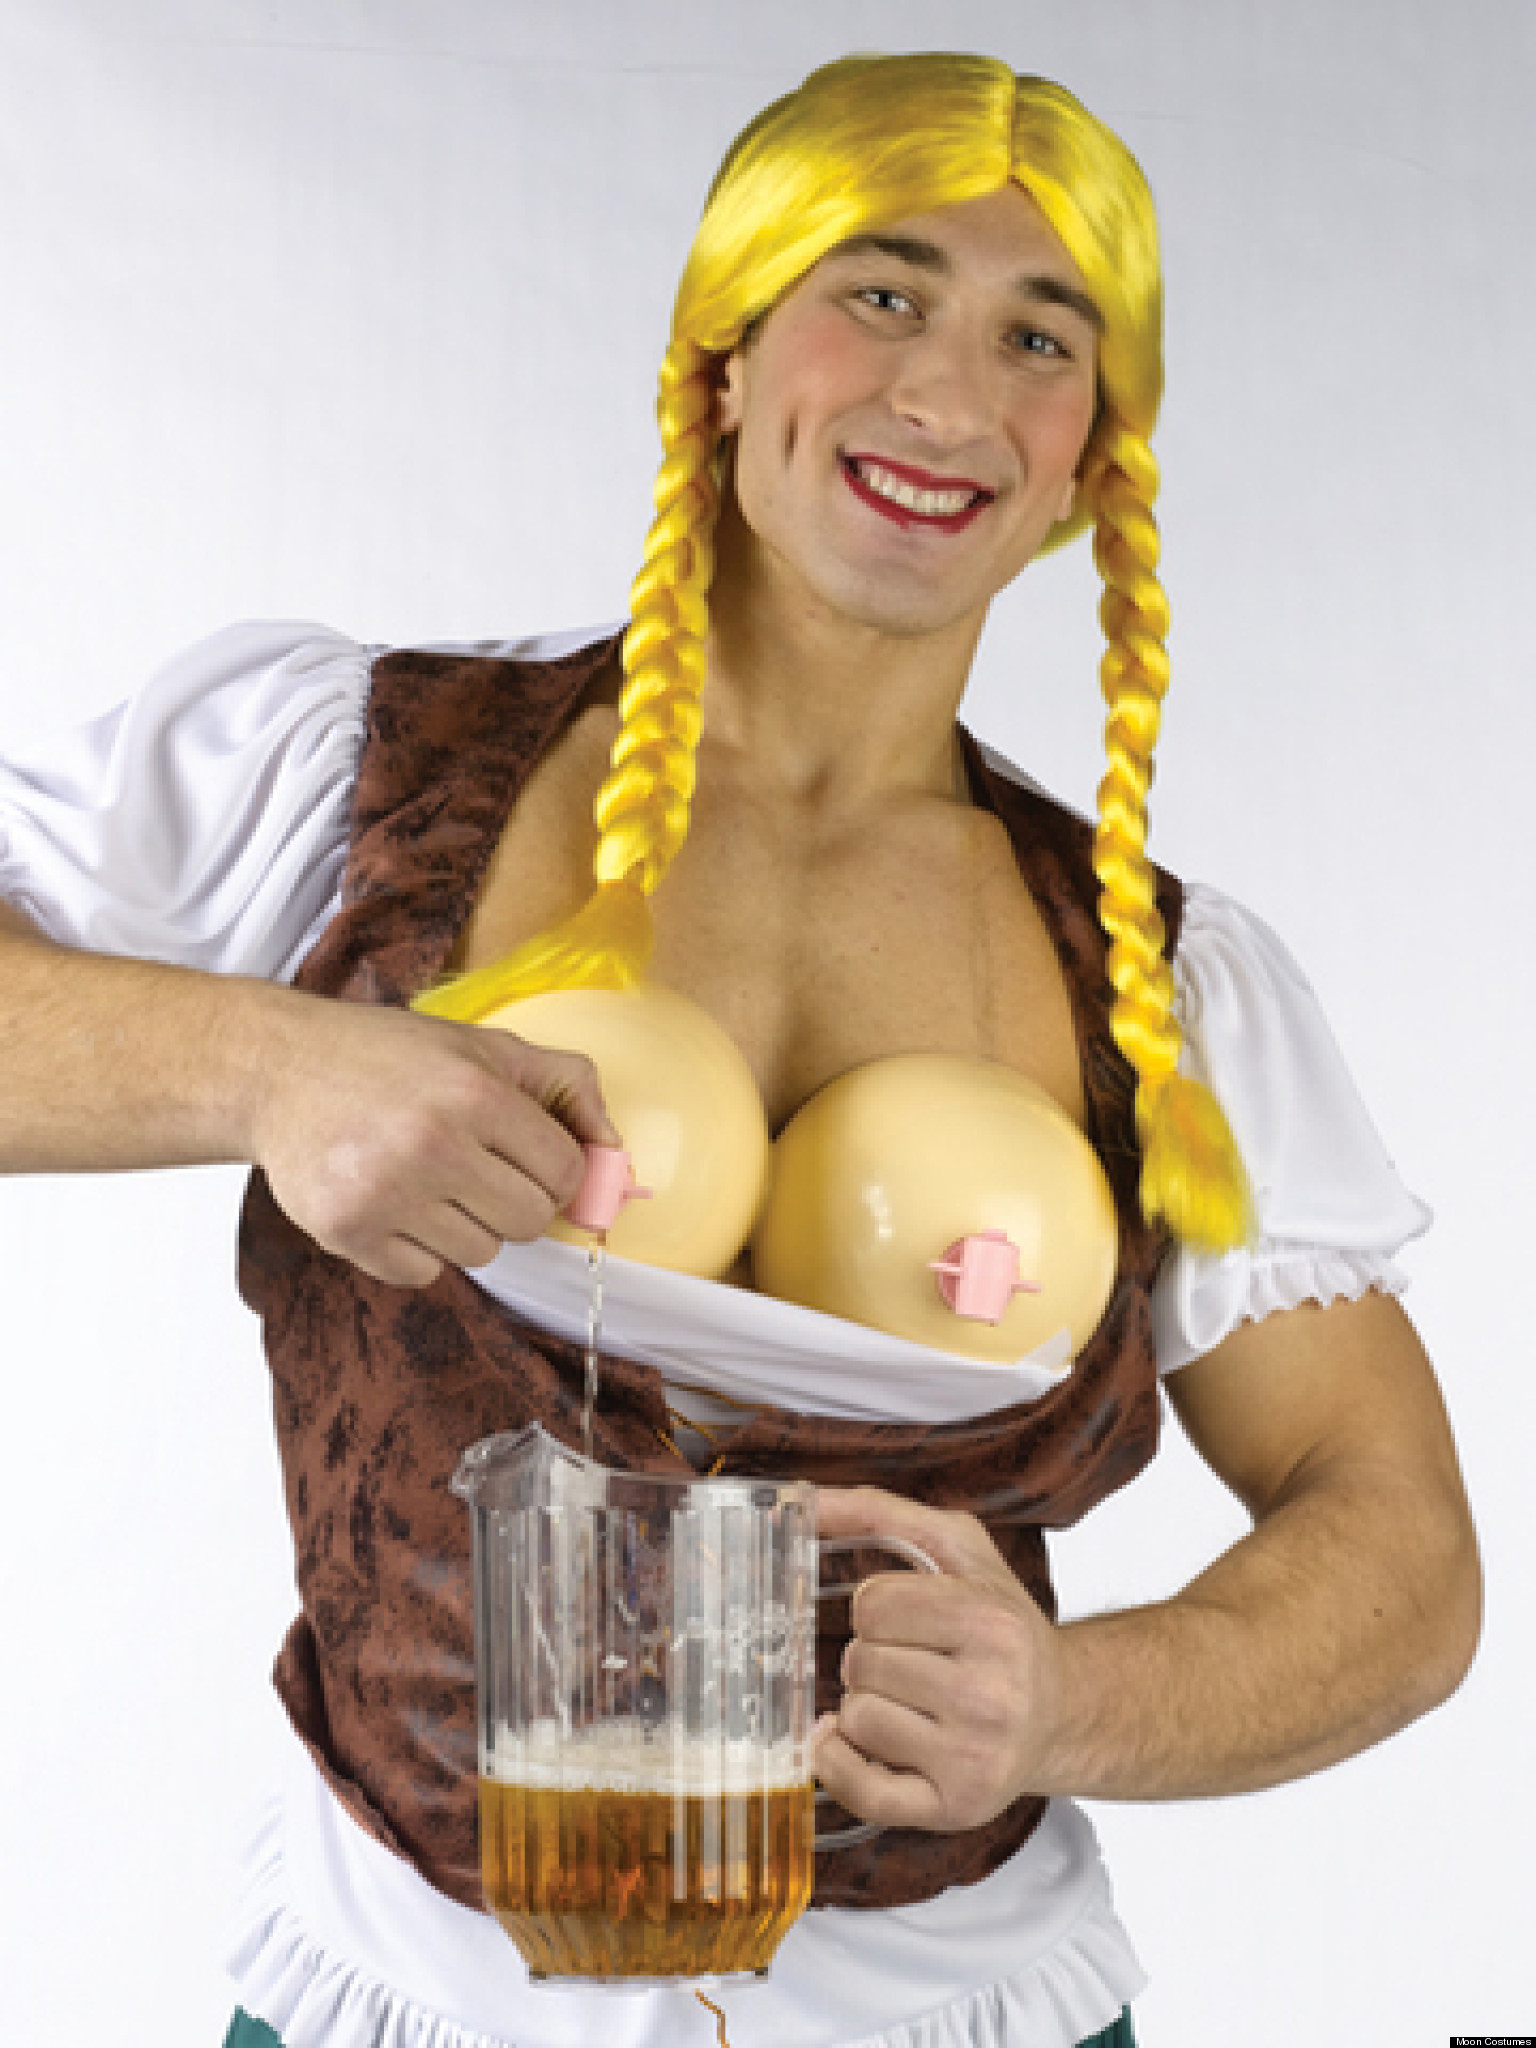 https://i0.wp.com/i.huffpost.com/gen/803065/thumbs/o-INAPPROPRIATE-HALLOWEEN-COSTUMES-facebook.jpg